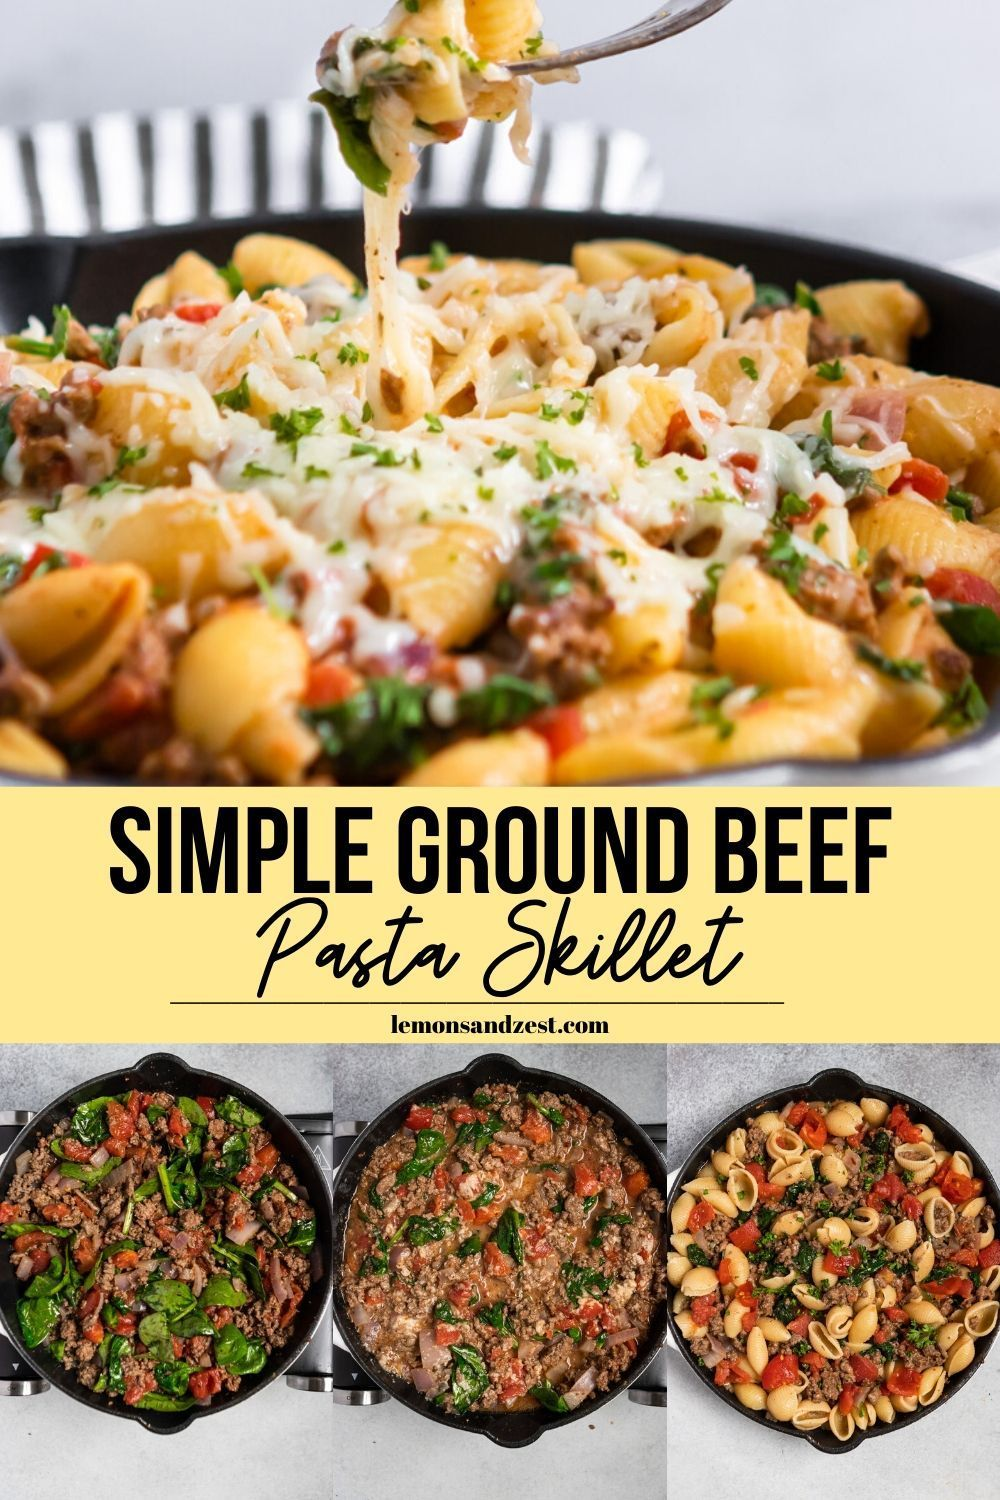 Simple Ground Beef Pasta Skillet In 2020 Healthy Beef Recipes Delicious Beef Recipe Ground Beef Recipes